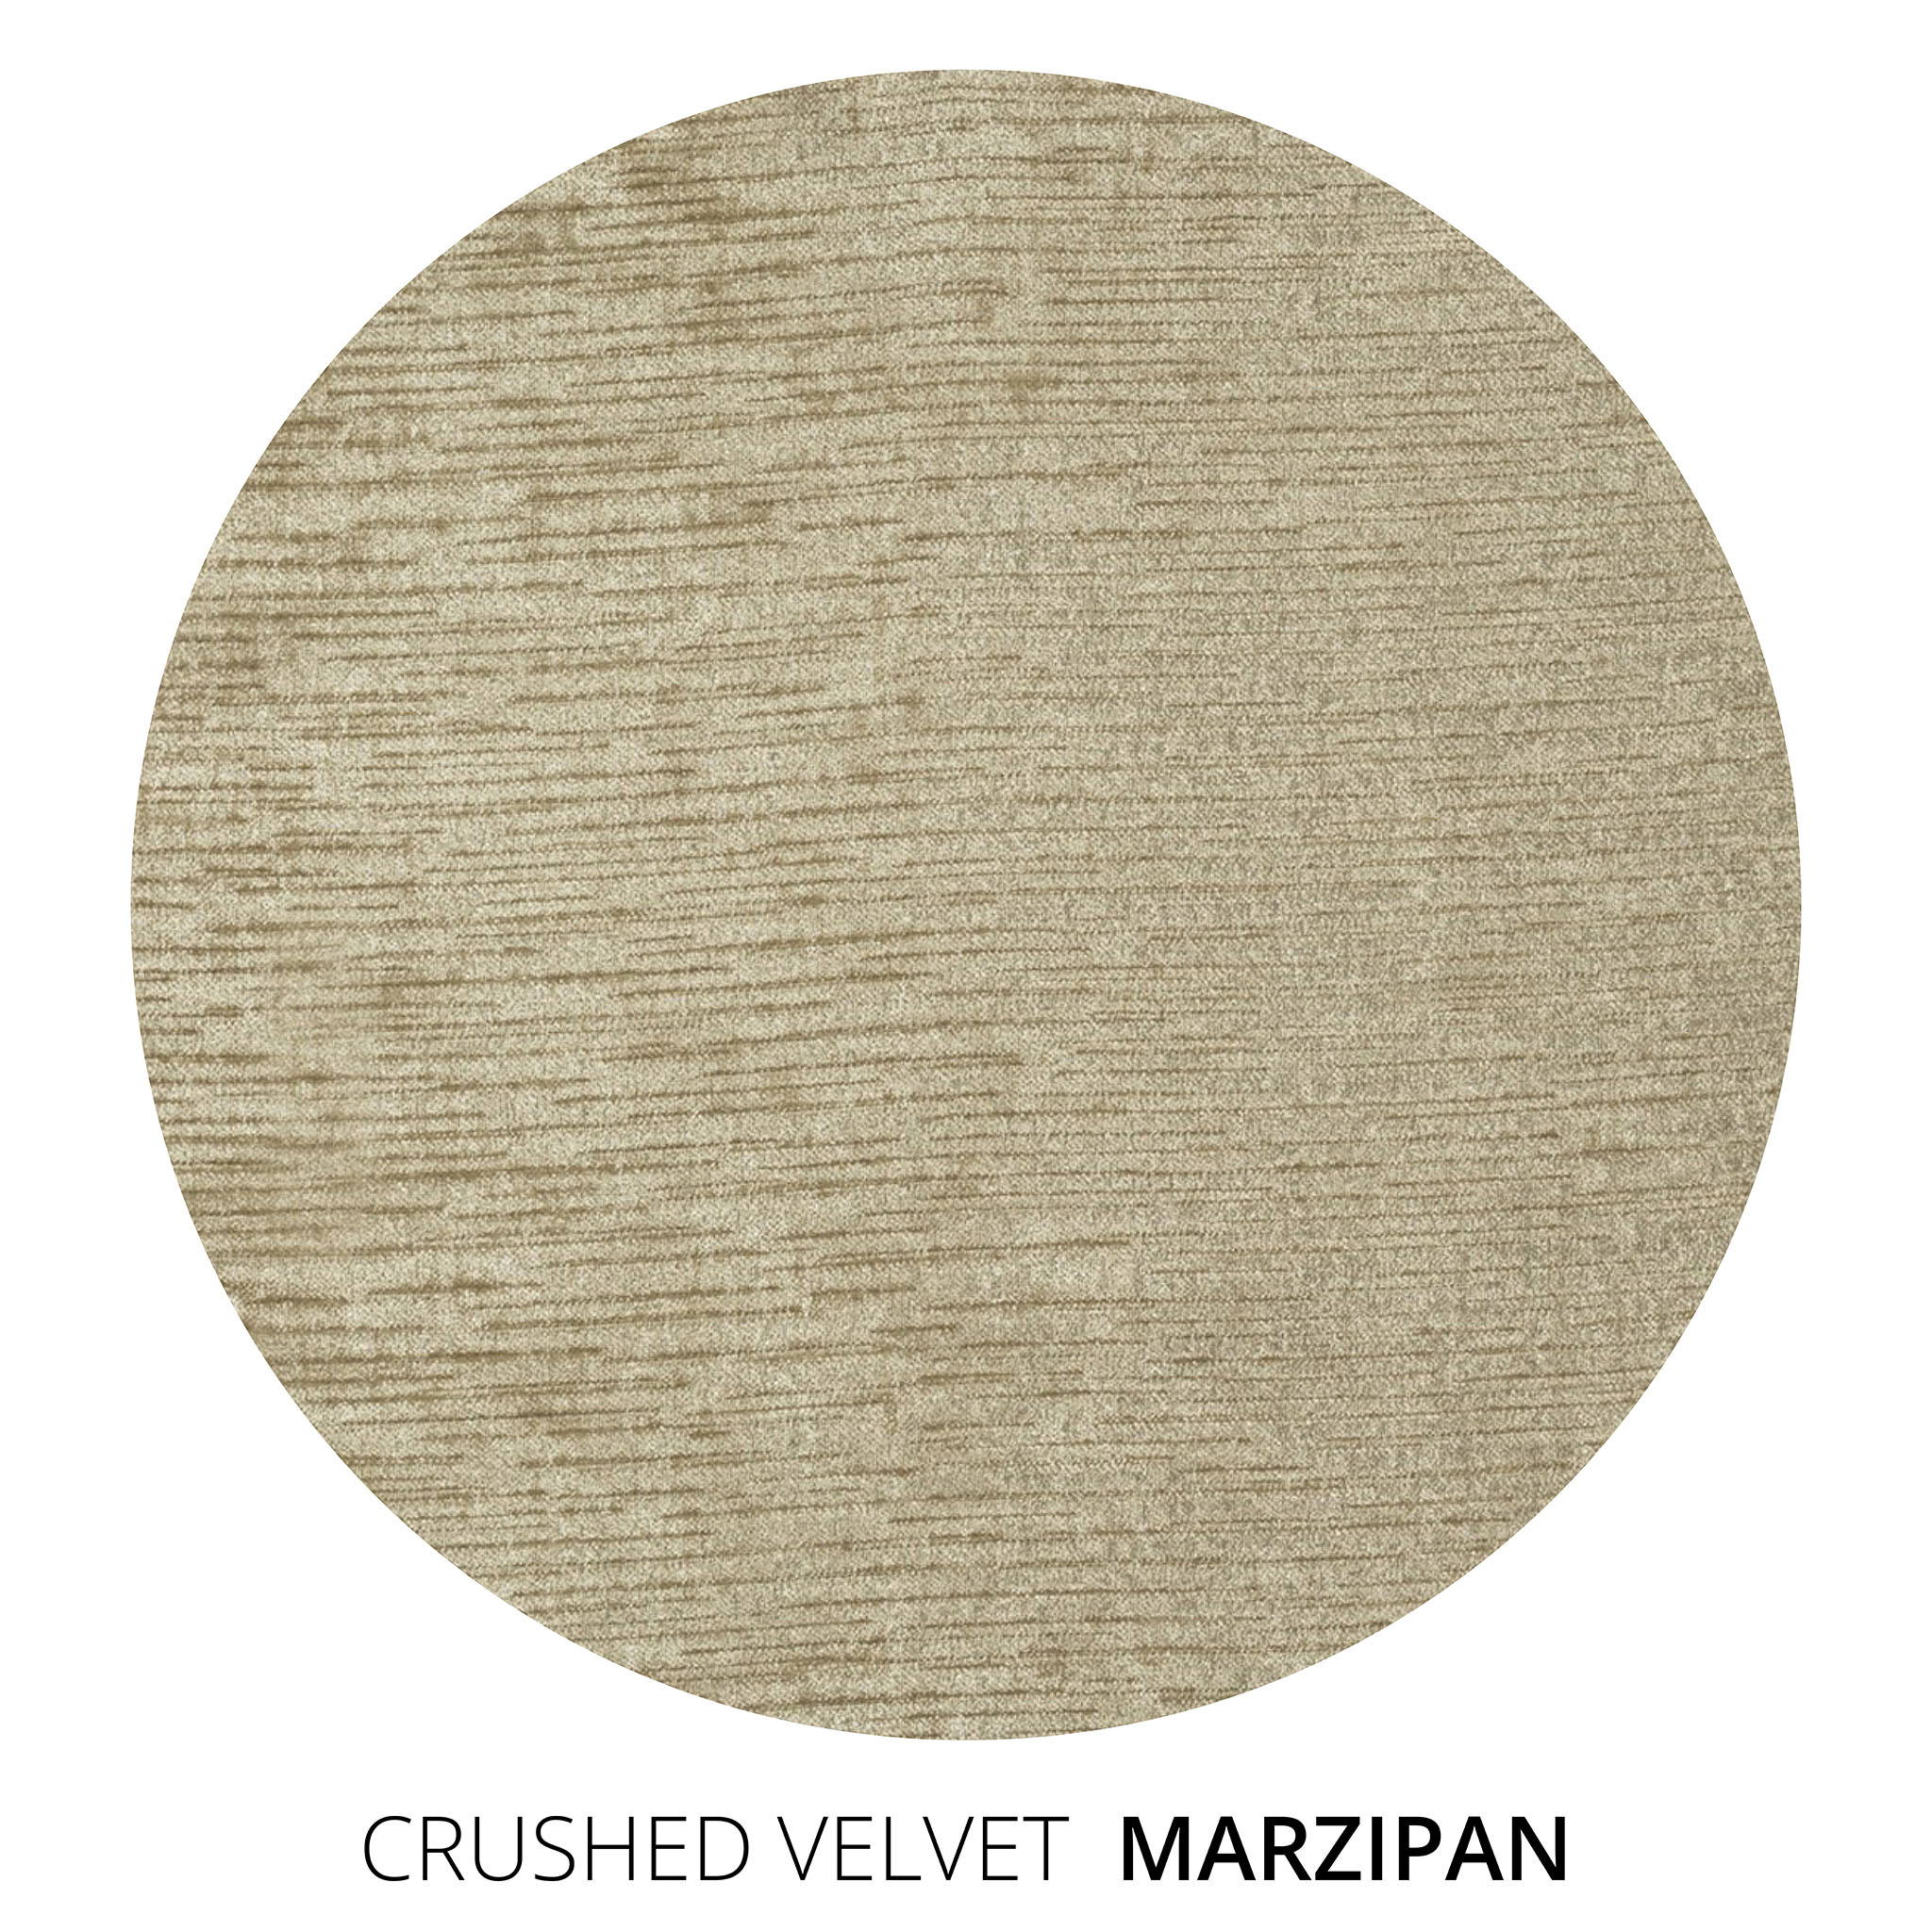 Marzipan Crushed Velvet Swatch